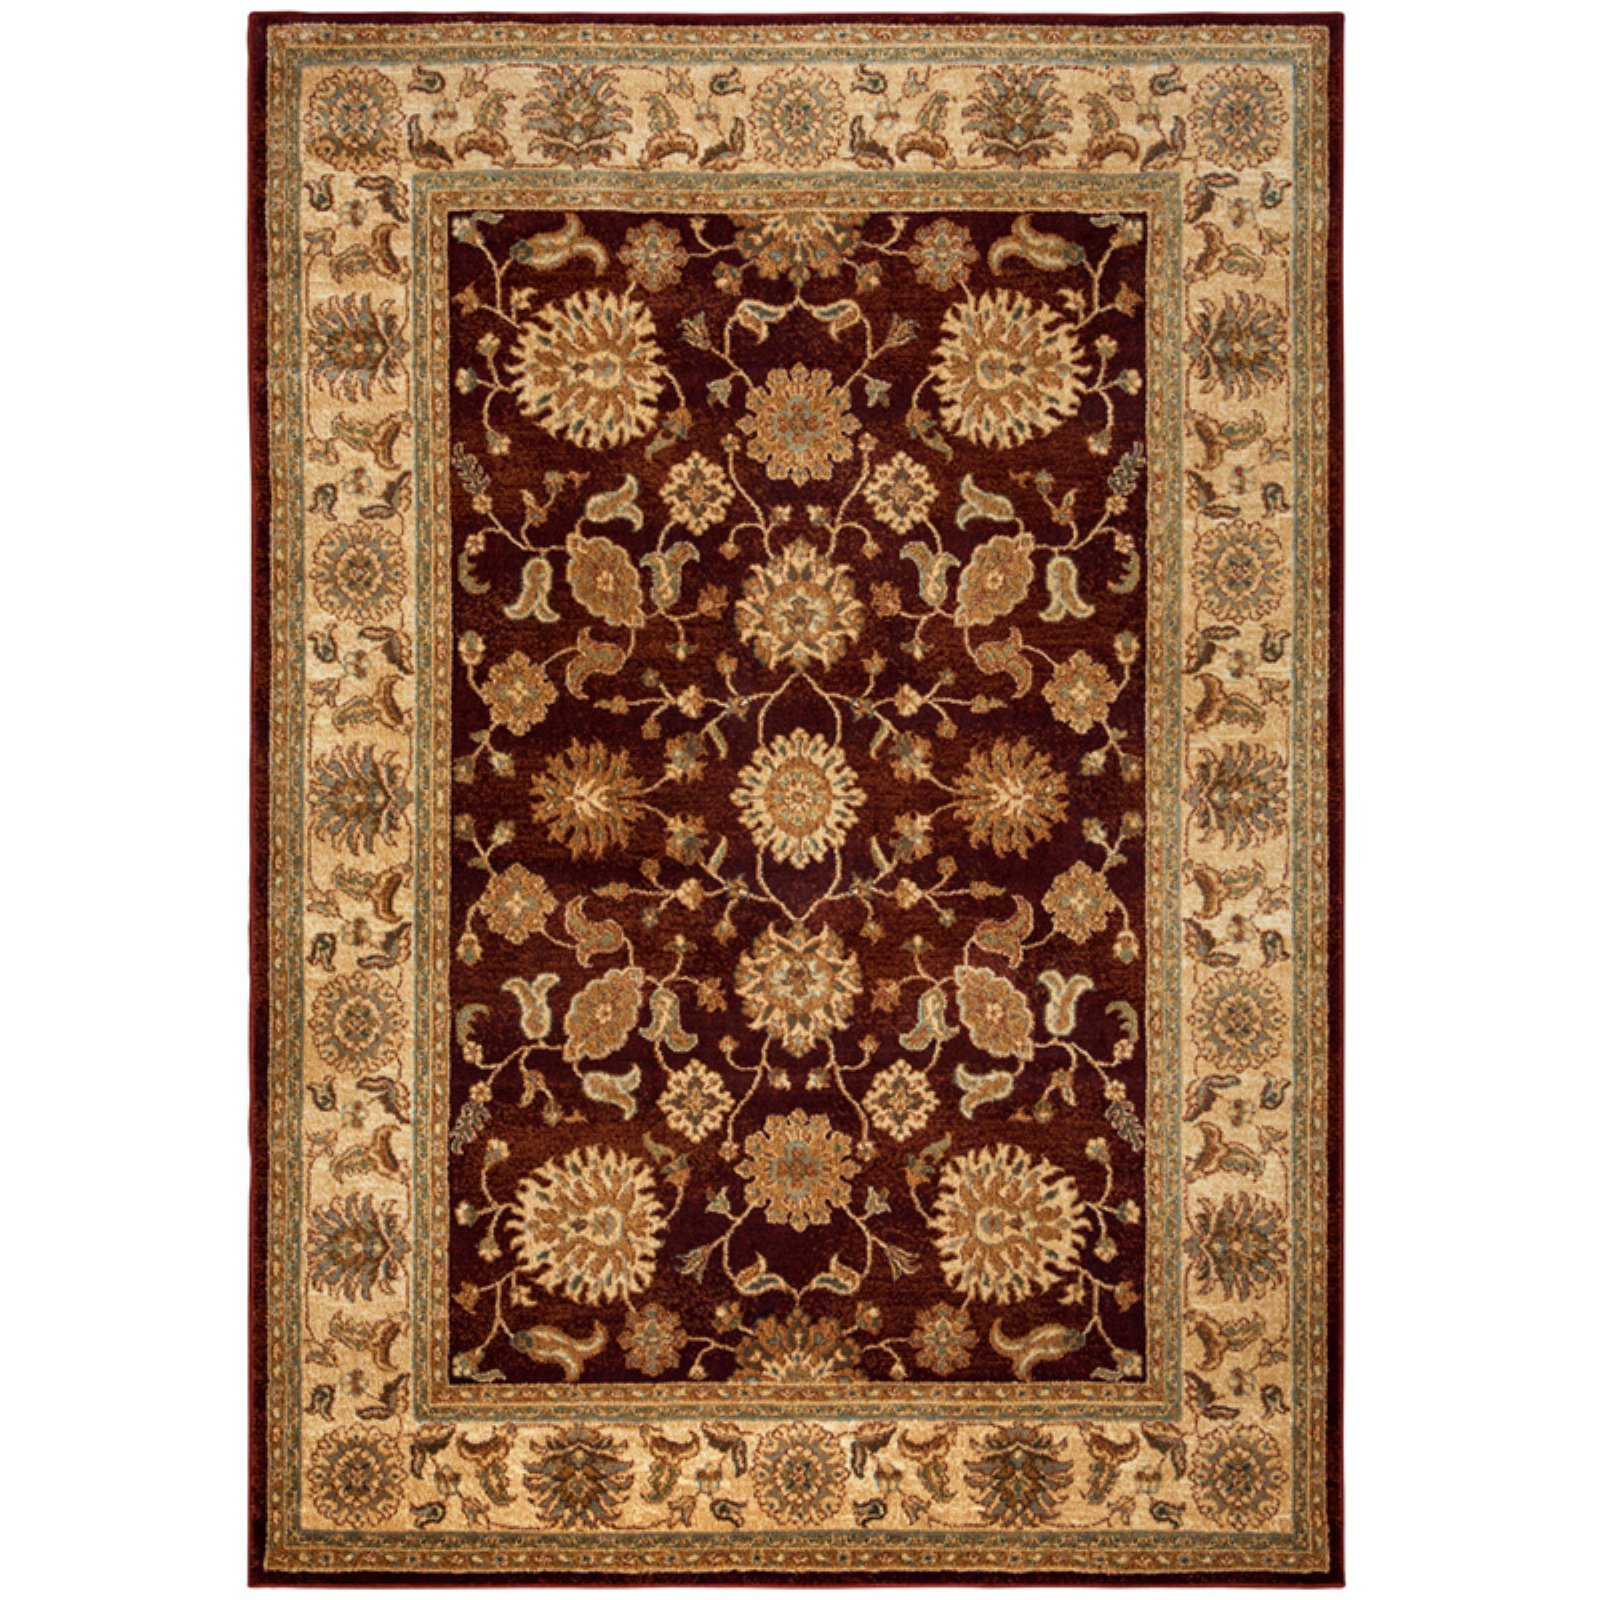 Rizzy Home Bellevue Double Pointed Area Rug 9 Ft. 2 In. X 12 Ft. 6 In. Burgundy Model BLVBV371300709216